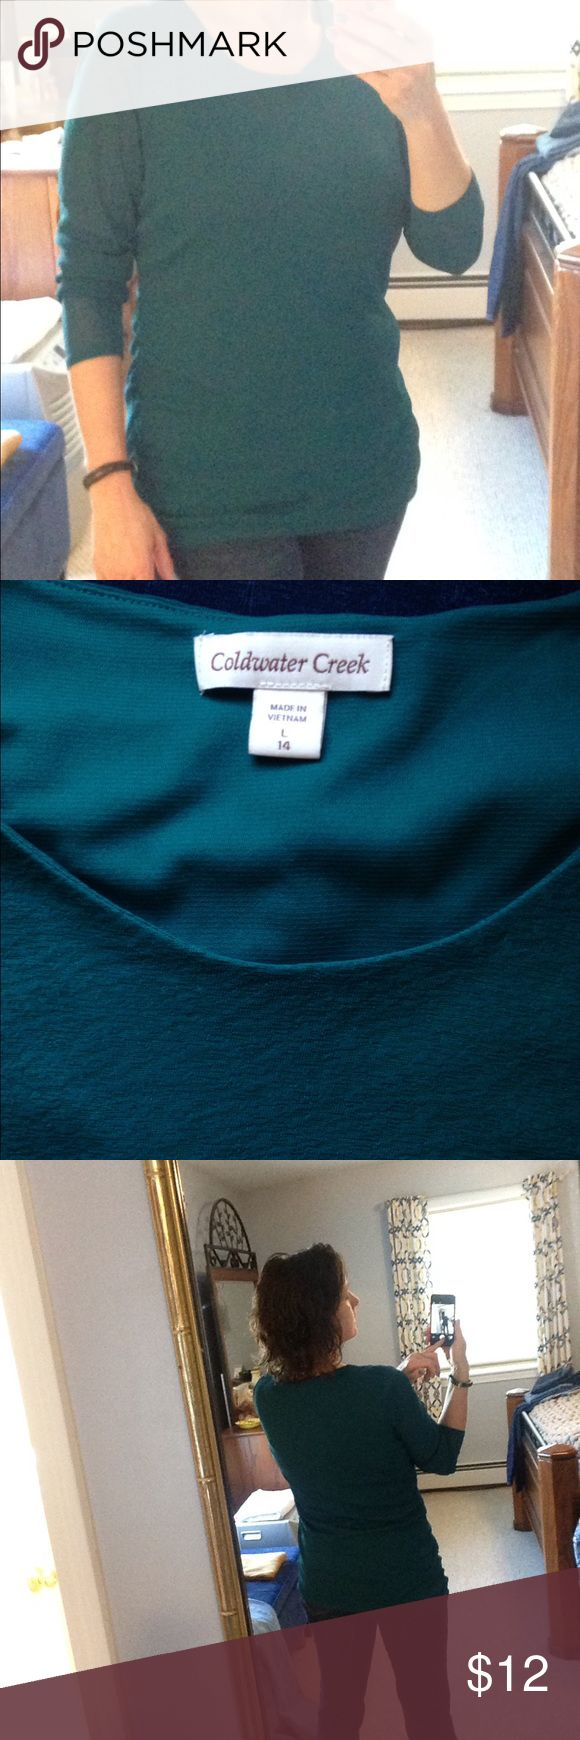 Coldwater Creek long-sleeve top EUC Coldwater Creek top, flattering ruched sides,  lined front and back, sheerer sleeves.  Wear with jeans or dress it up! Coldwater Creek Tops Blouses